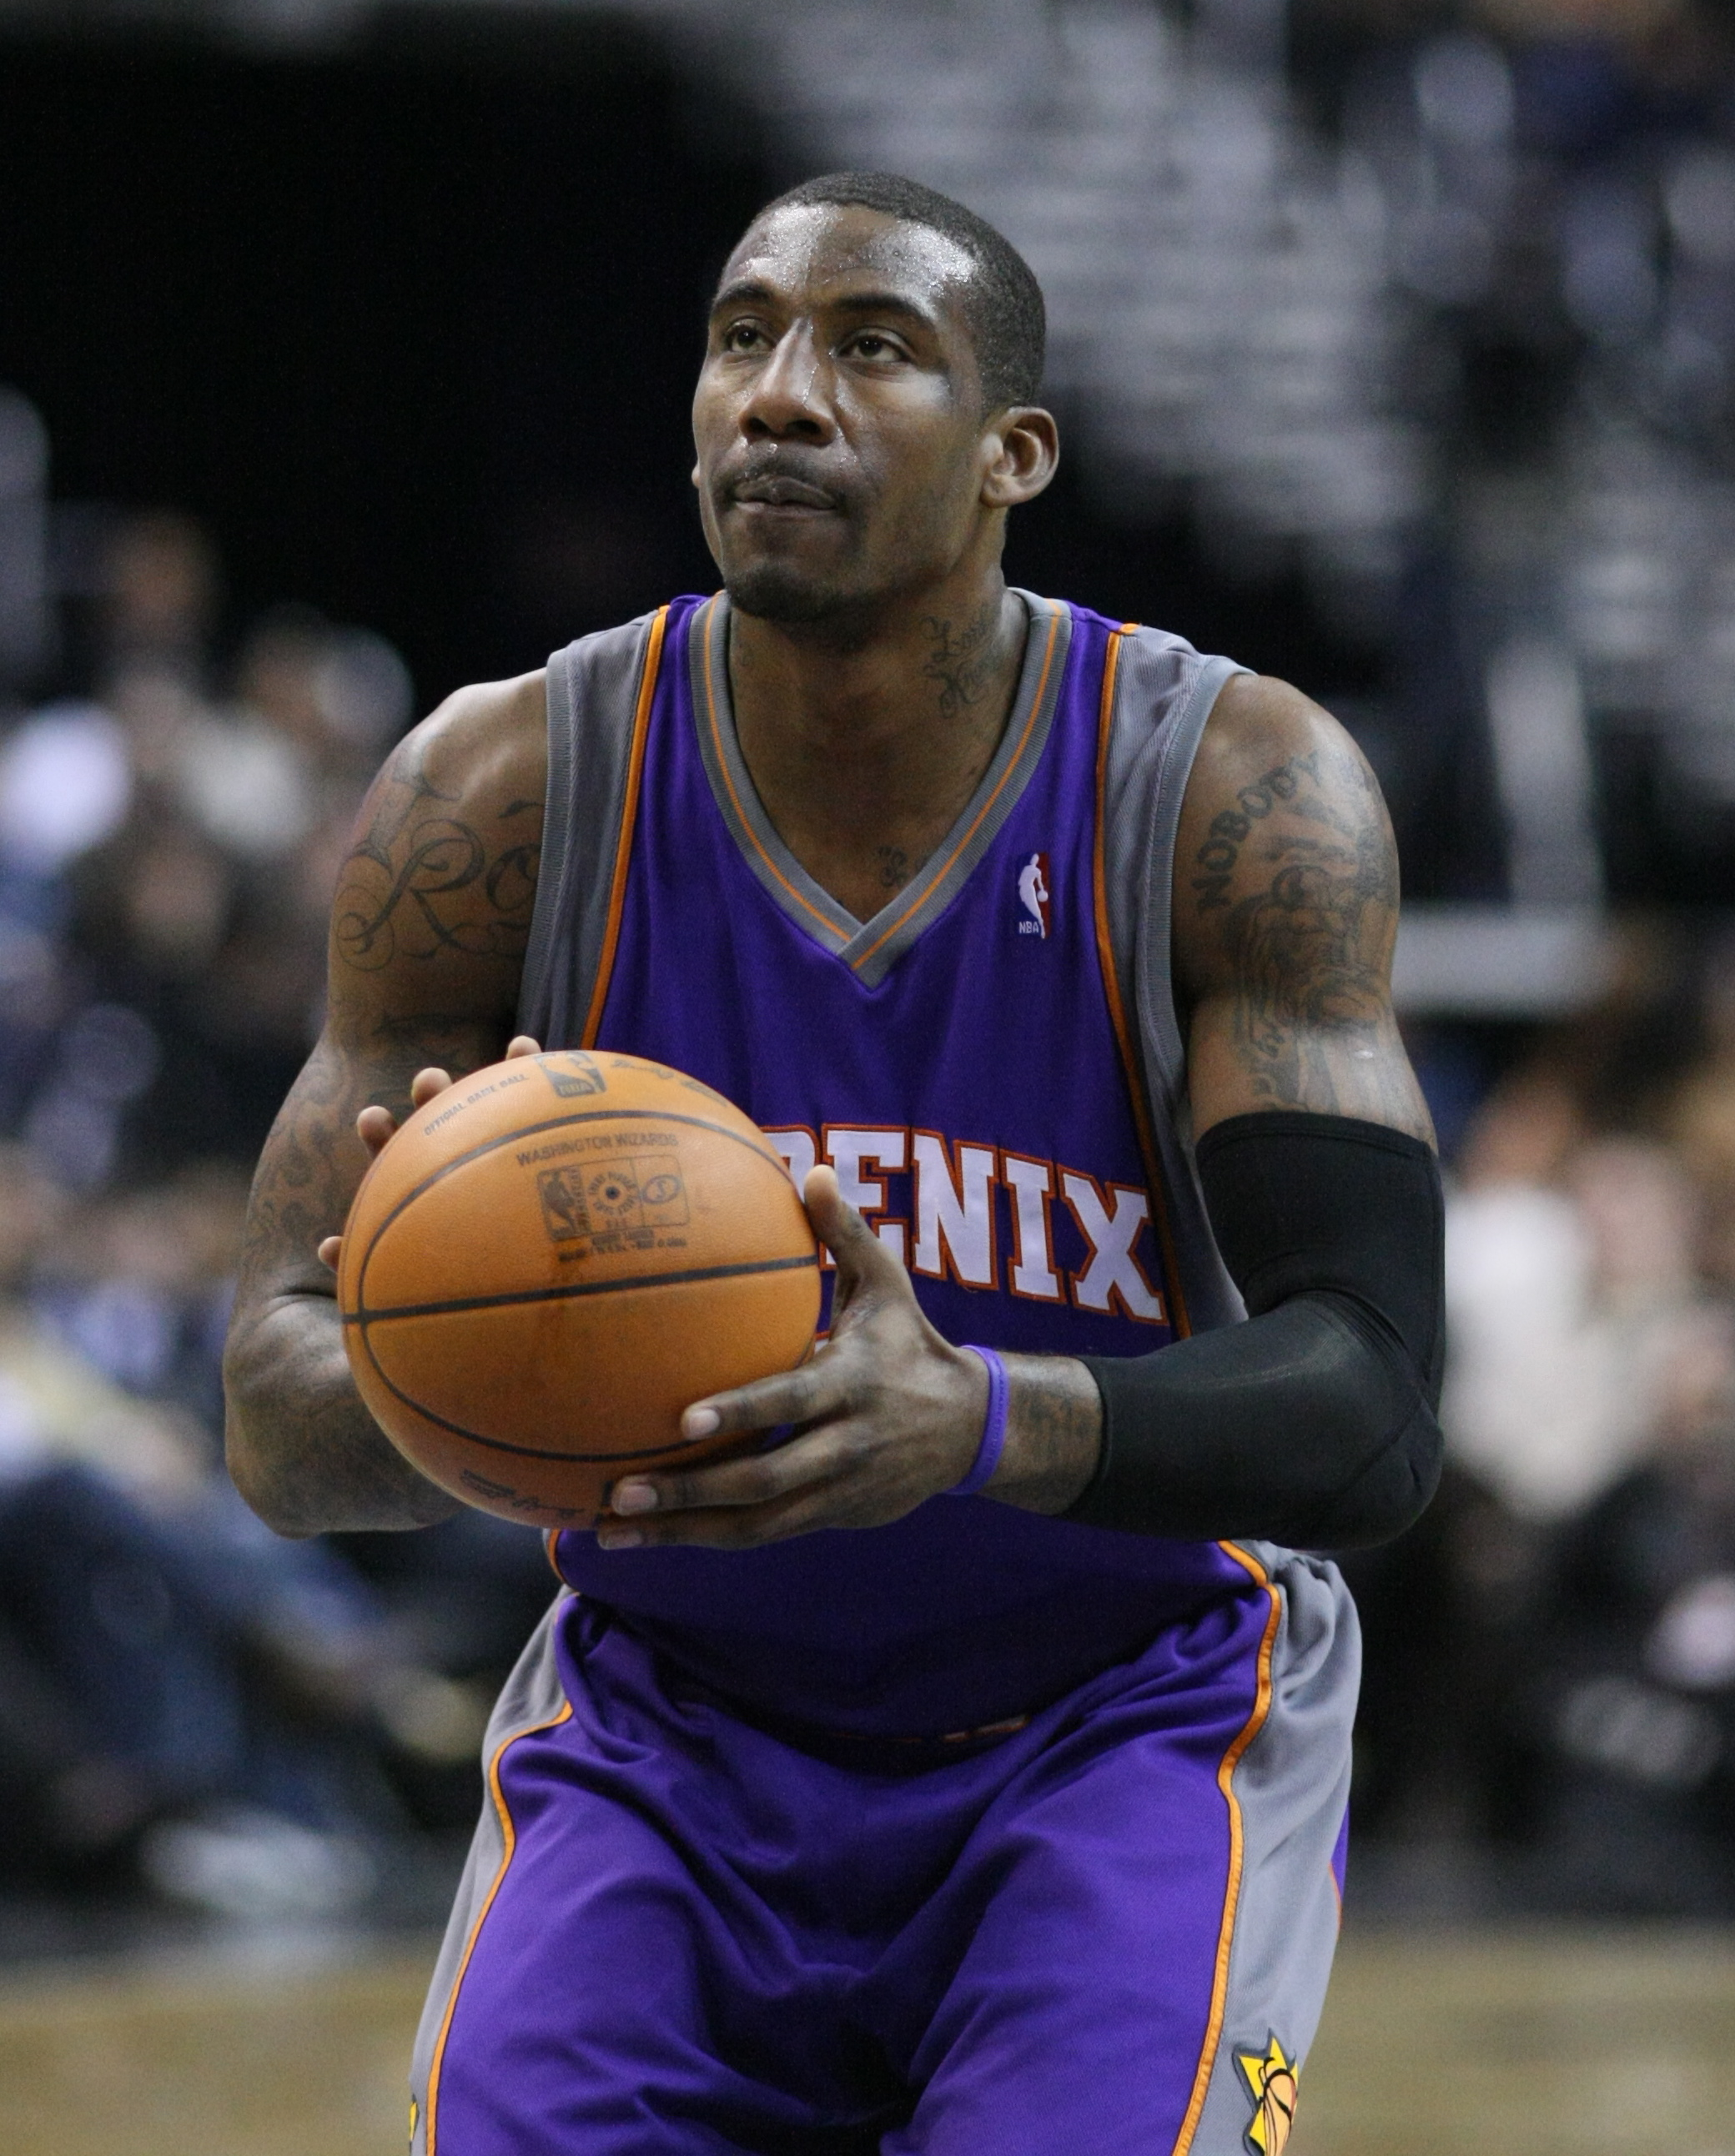 e7b9e10ed Jewish Basketball Fans Bid Farewell to Retiring Star Amare Stoudemire